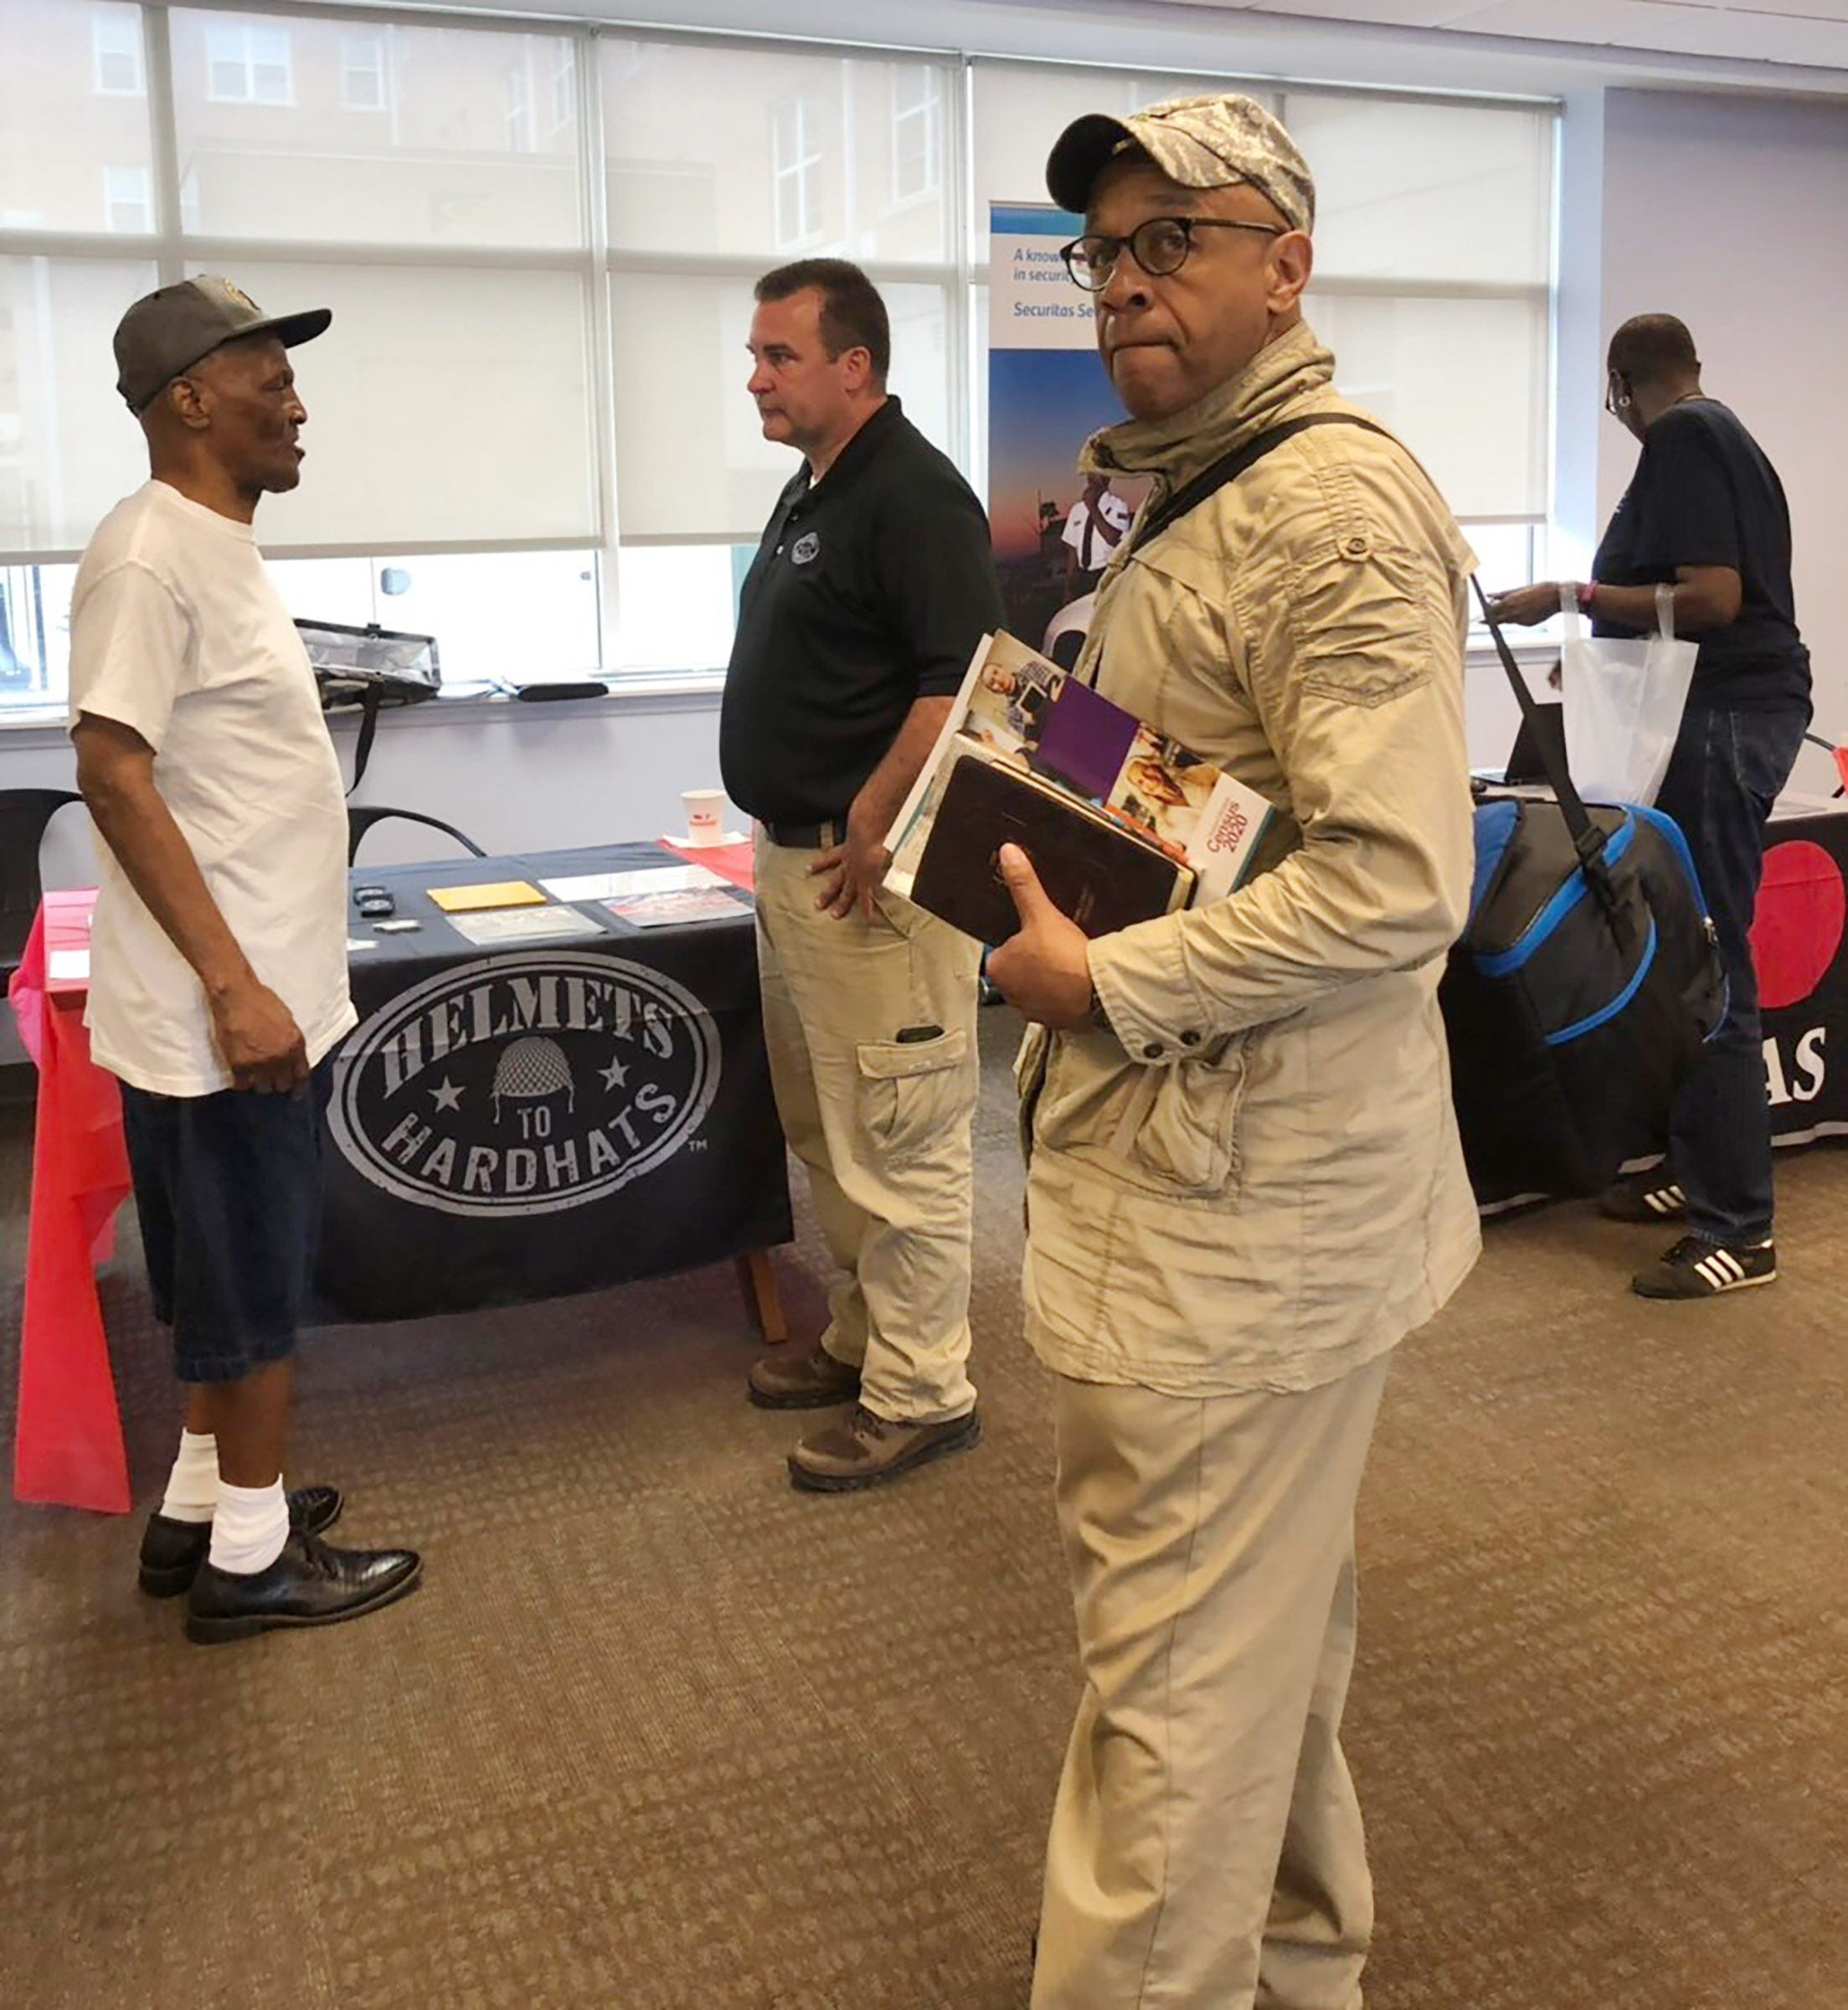 Through the years, the Elliottorian Business and Professional Women's Club has partnered with area employers to present career day events for Detroit residents.